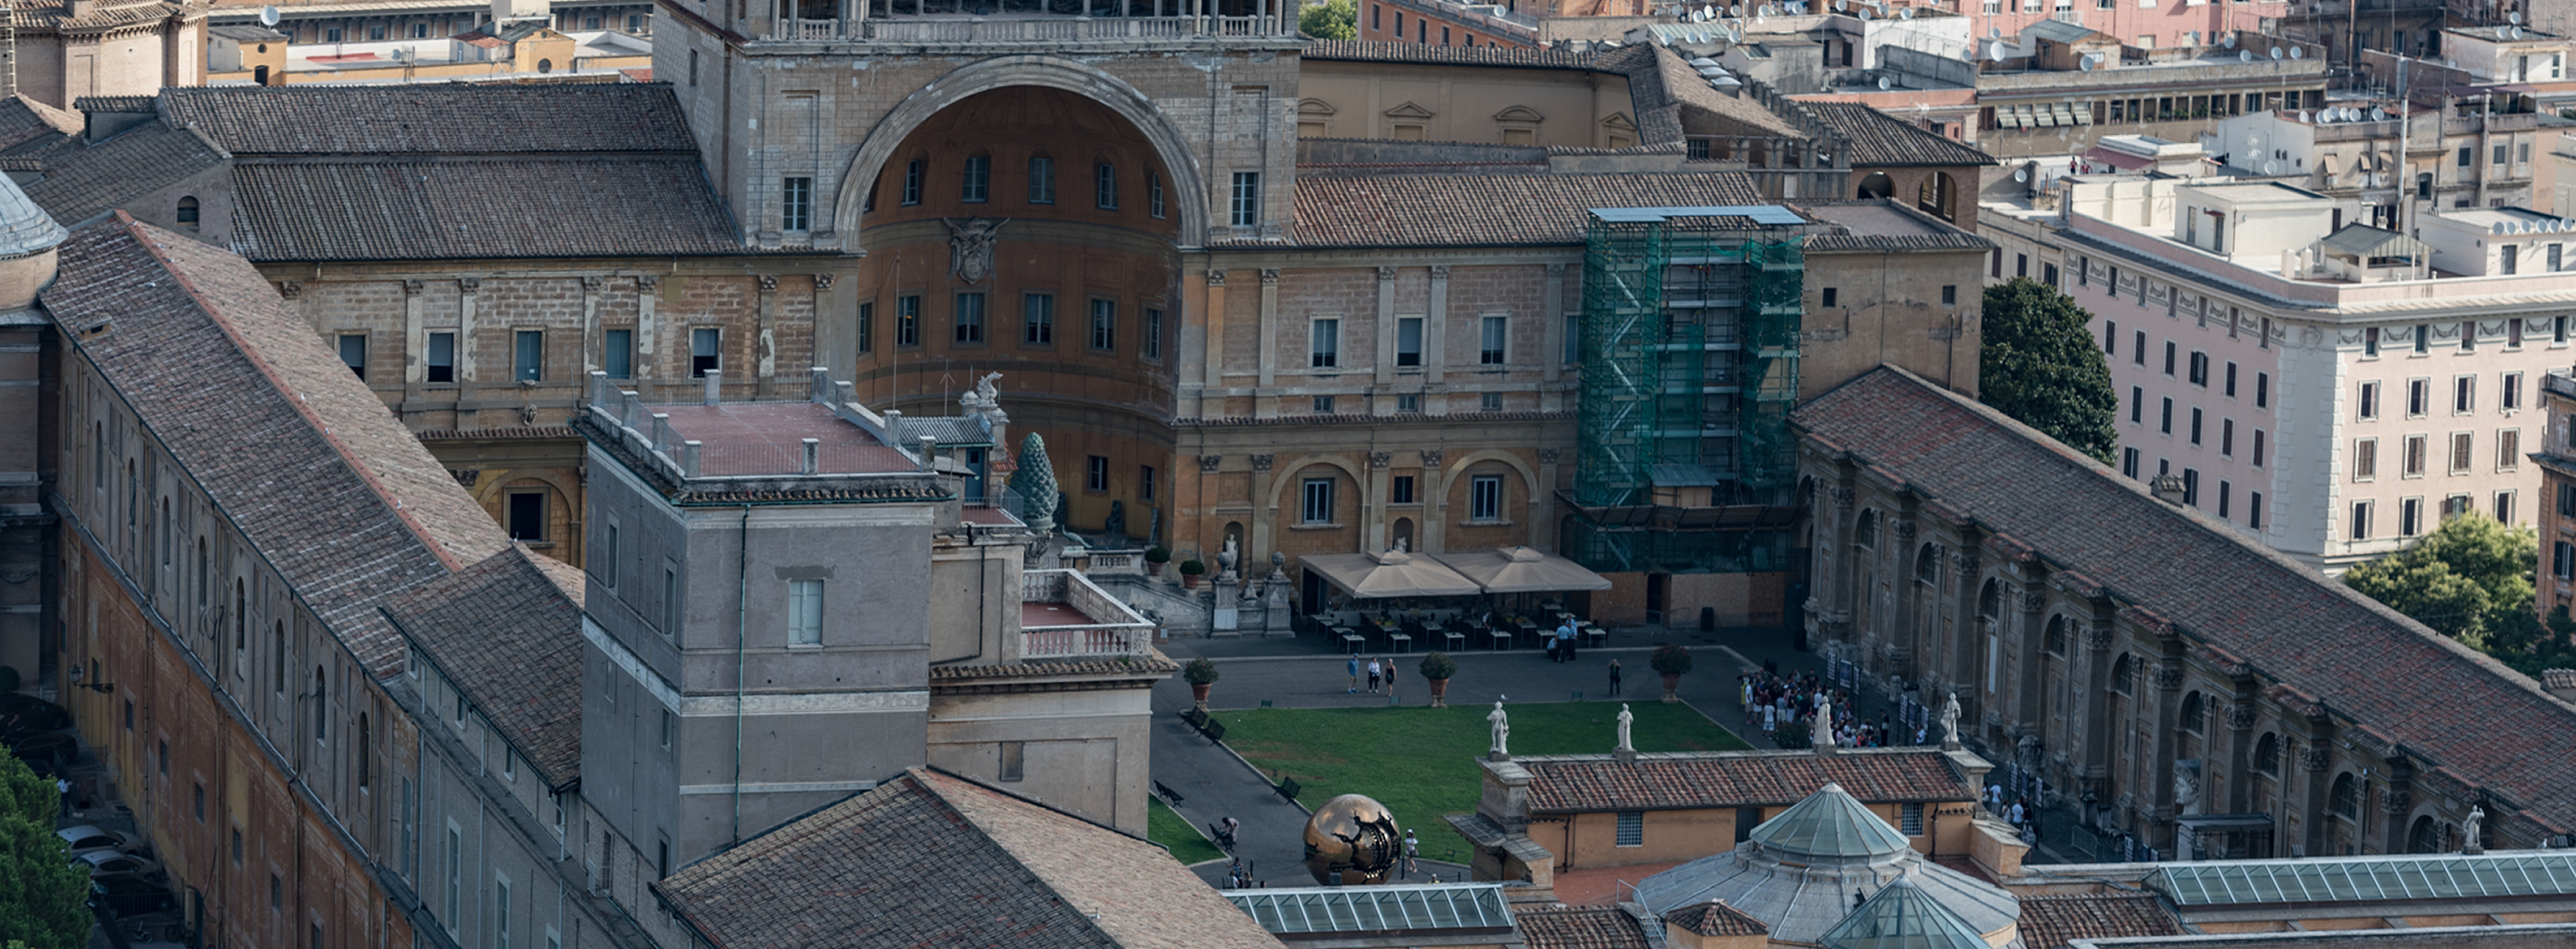 Overlooking the Courtyard of the Vatican Museum in Rome